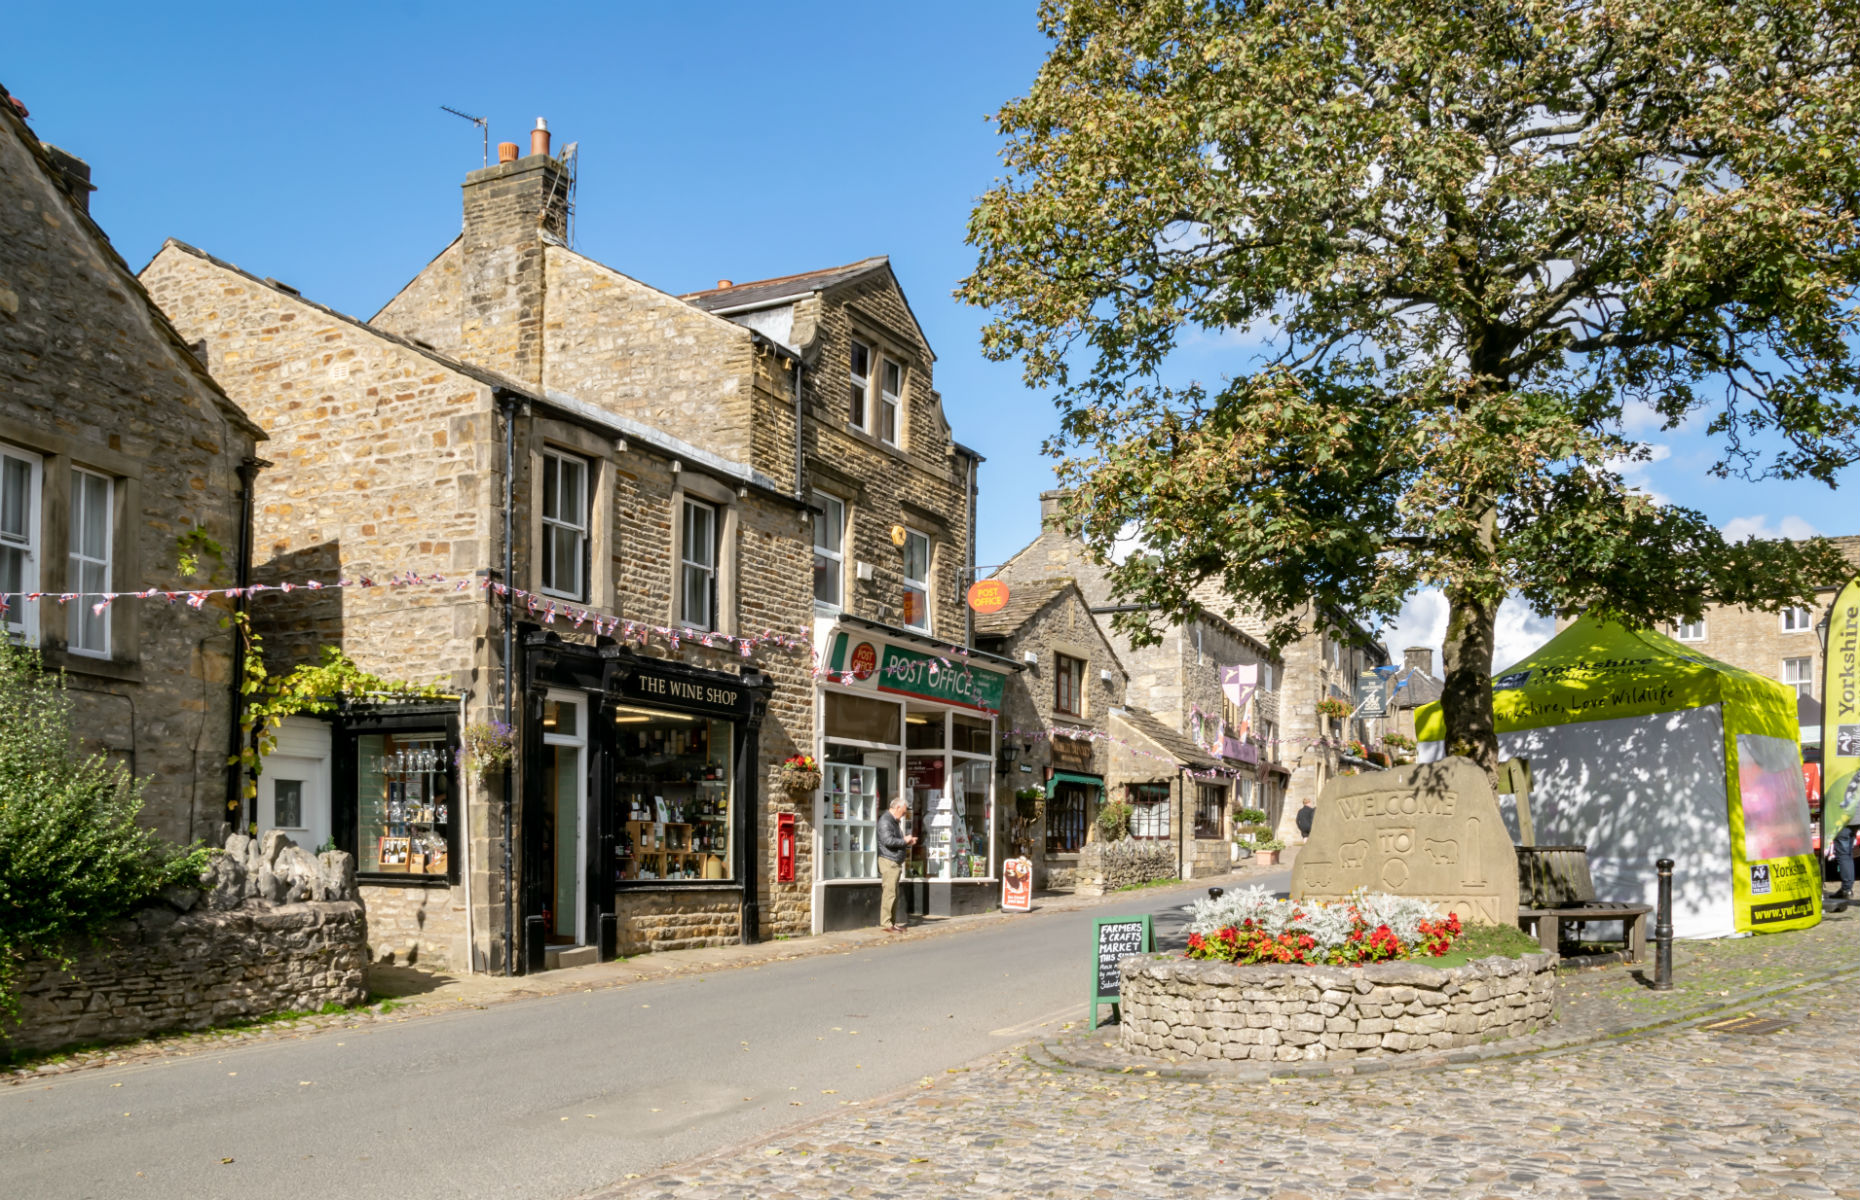 Grassington (Image: J. Jackson UK/Shutterstock)